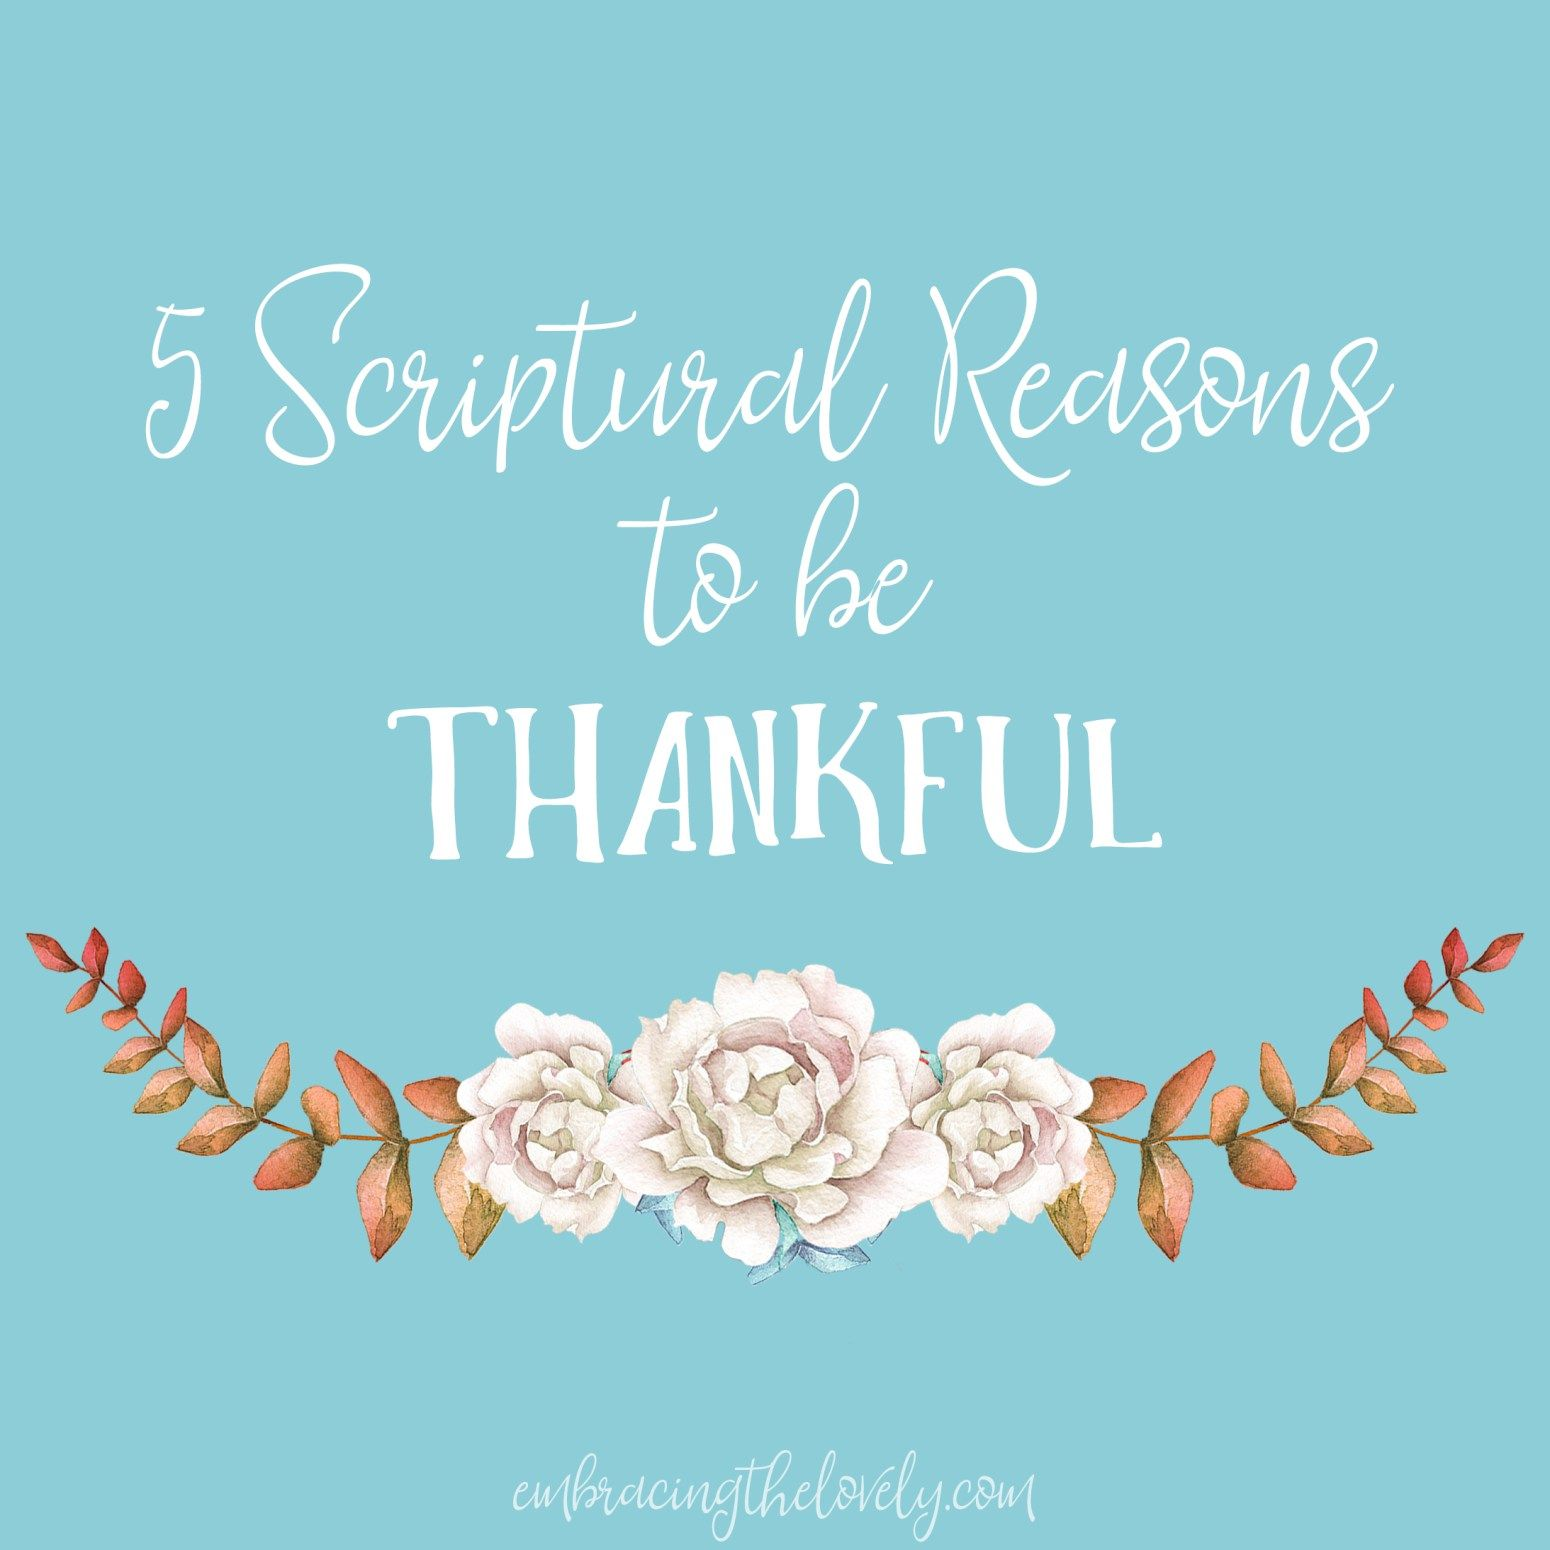 Blog scriptures and faith 5 scriptural reasons to be thankful with free printable kristyandbryce Gallery